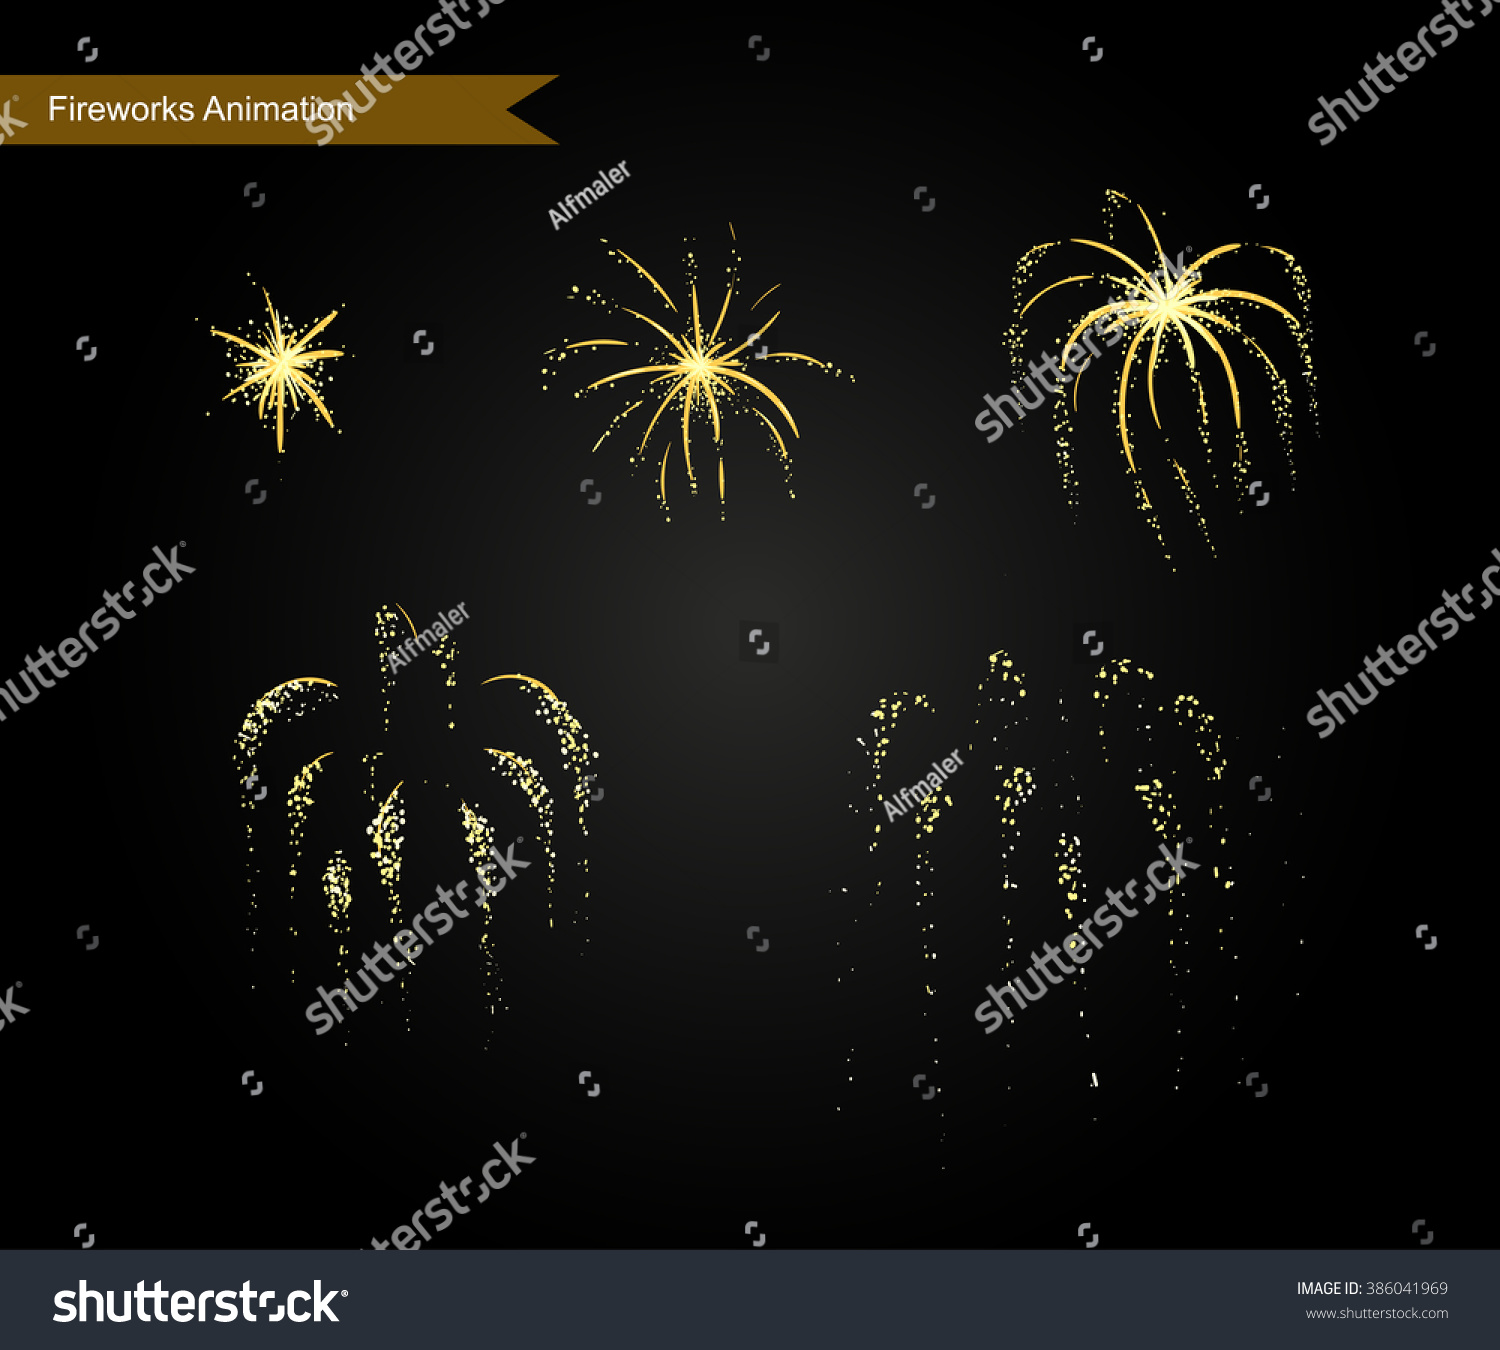 hight resolution of clipart panda free clipart exploding fireworks animated graphic exploding fireworks animated clipart